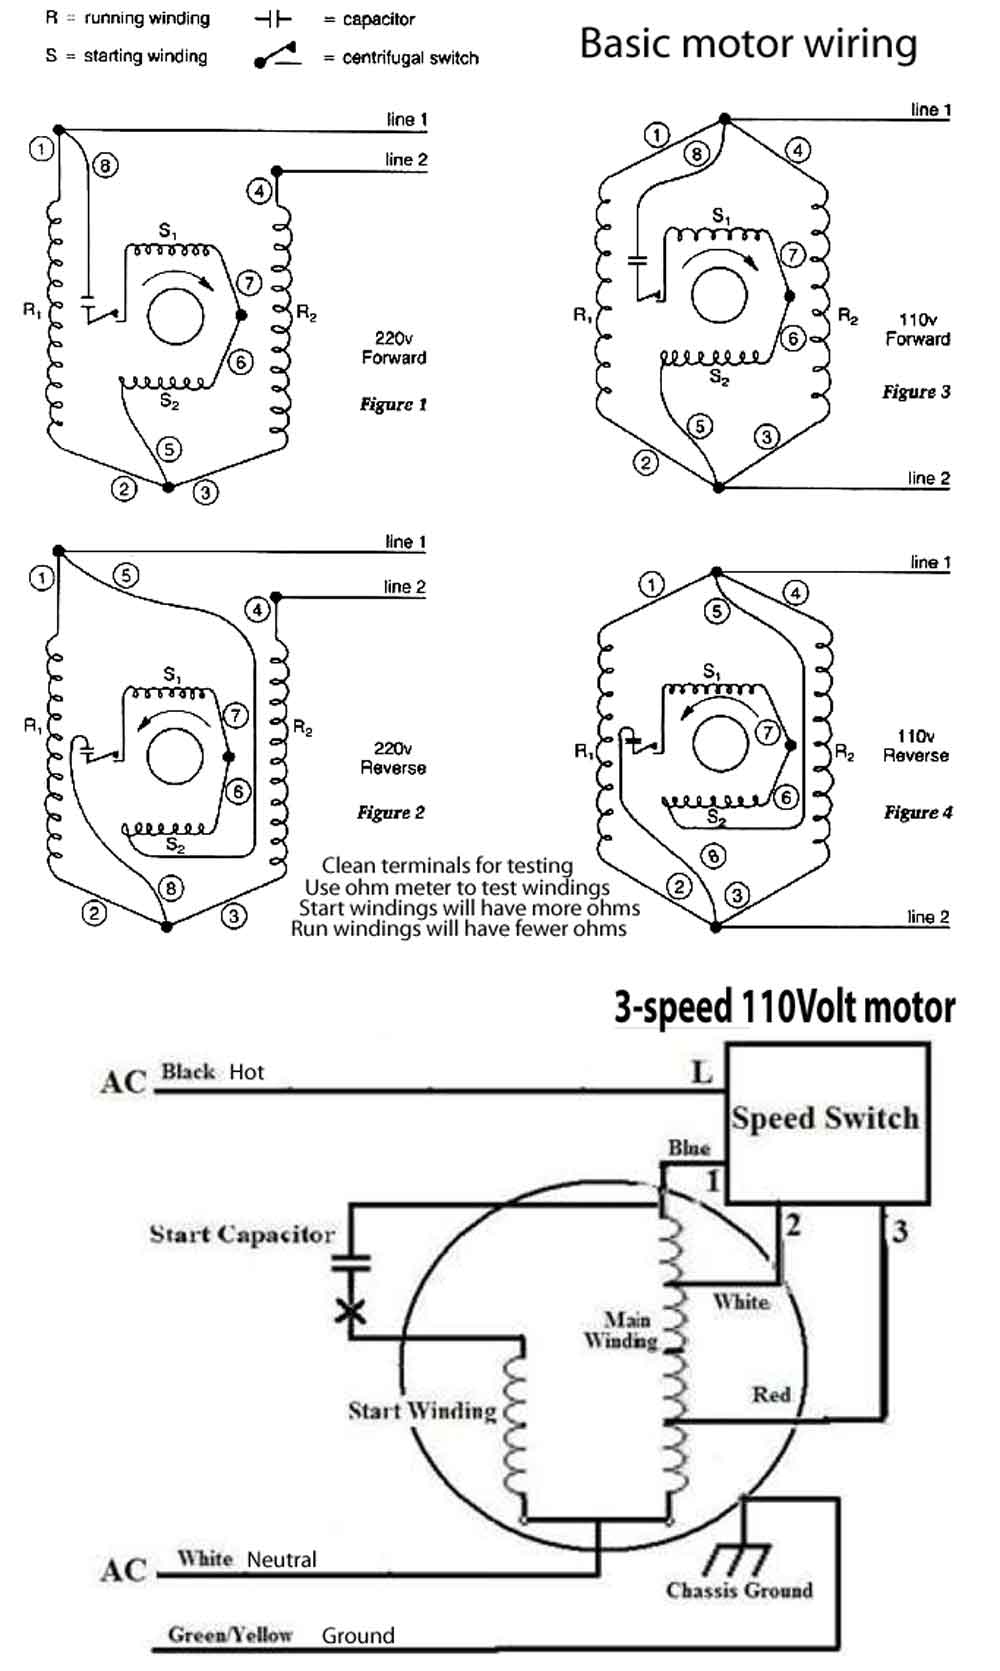 How To Wire 3 Speed Fan Switch Schematic Of A Simple Forward Reverse Motor Controller For Phase Wiring